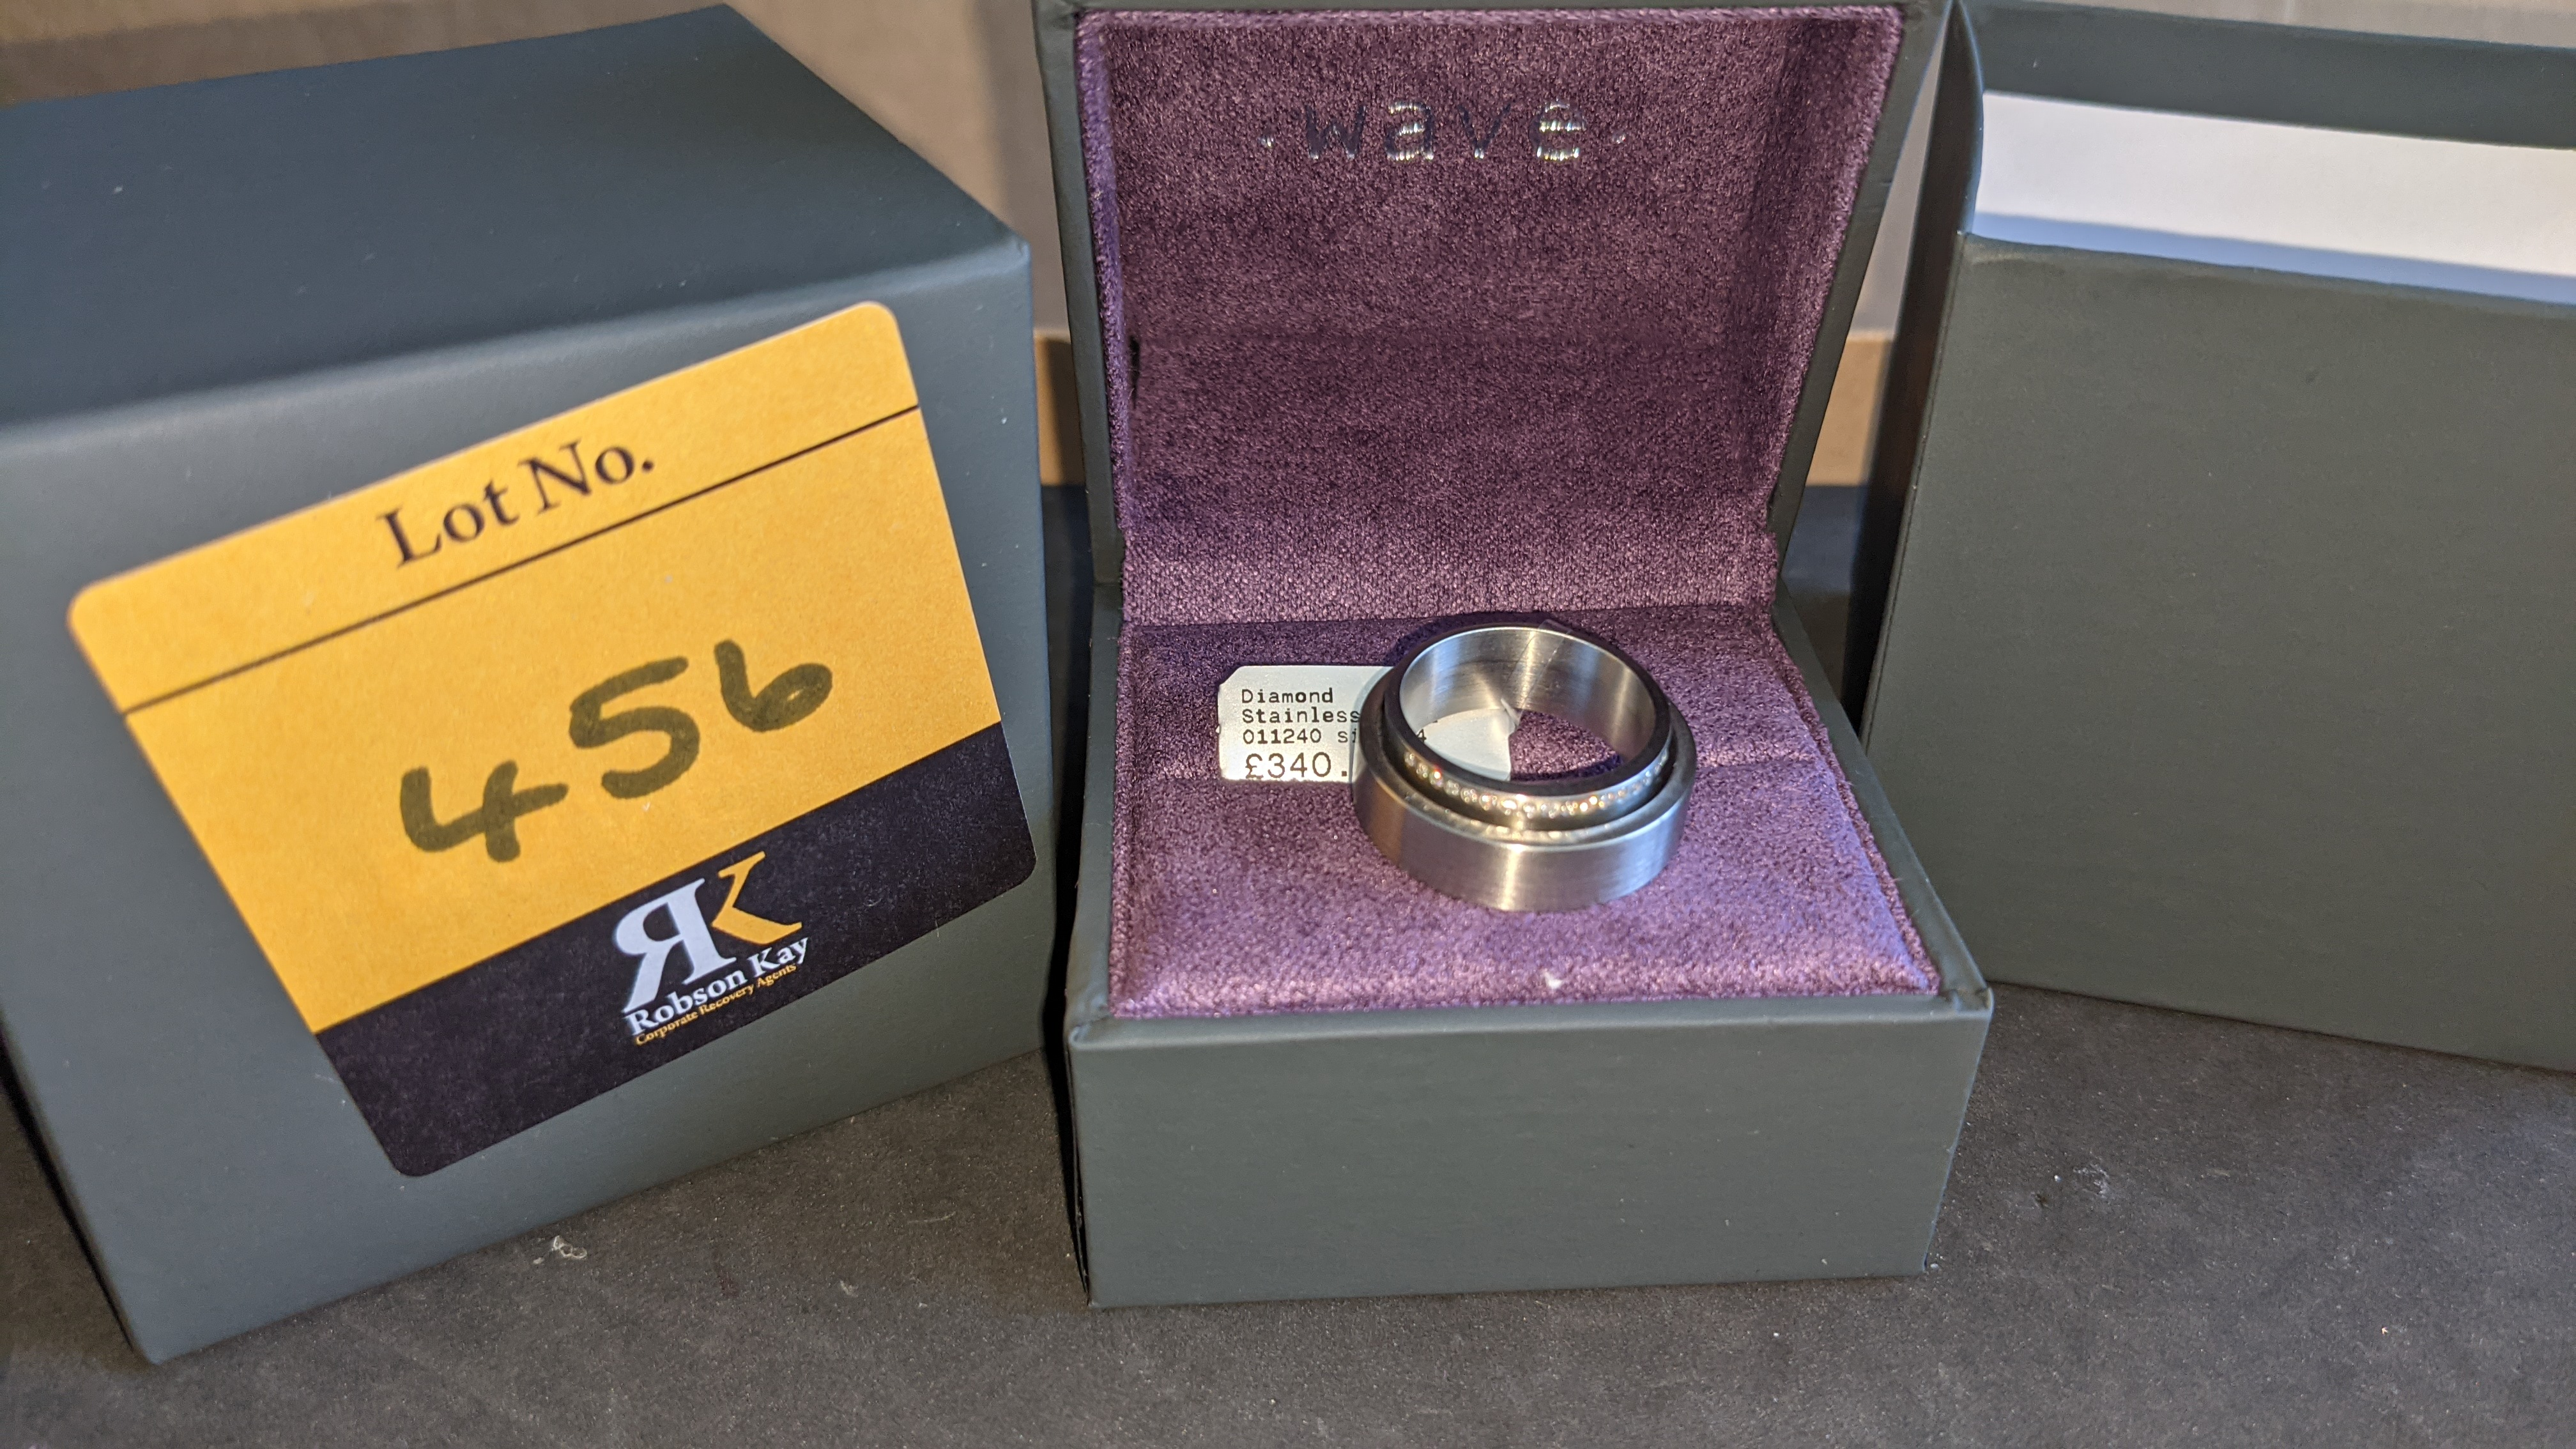 Stainless steel & diamond unusually shaped ring with inner & outer circles joined on one side, RRP £ - Image 2 of 11